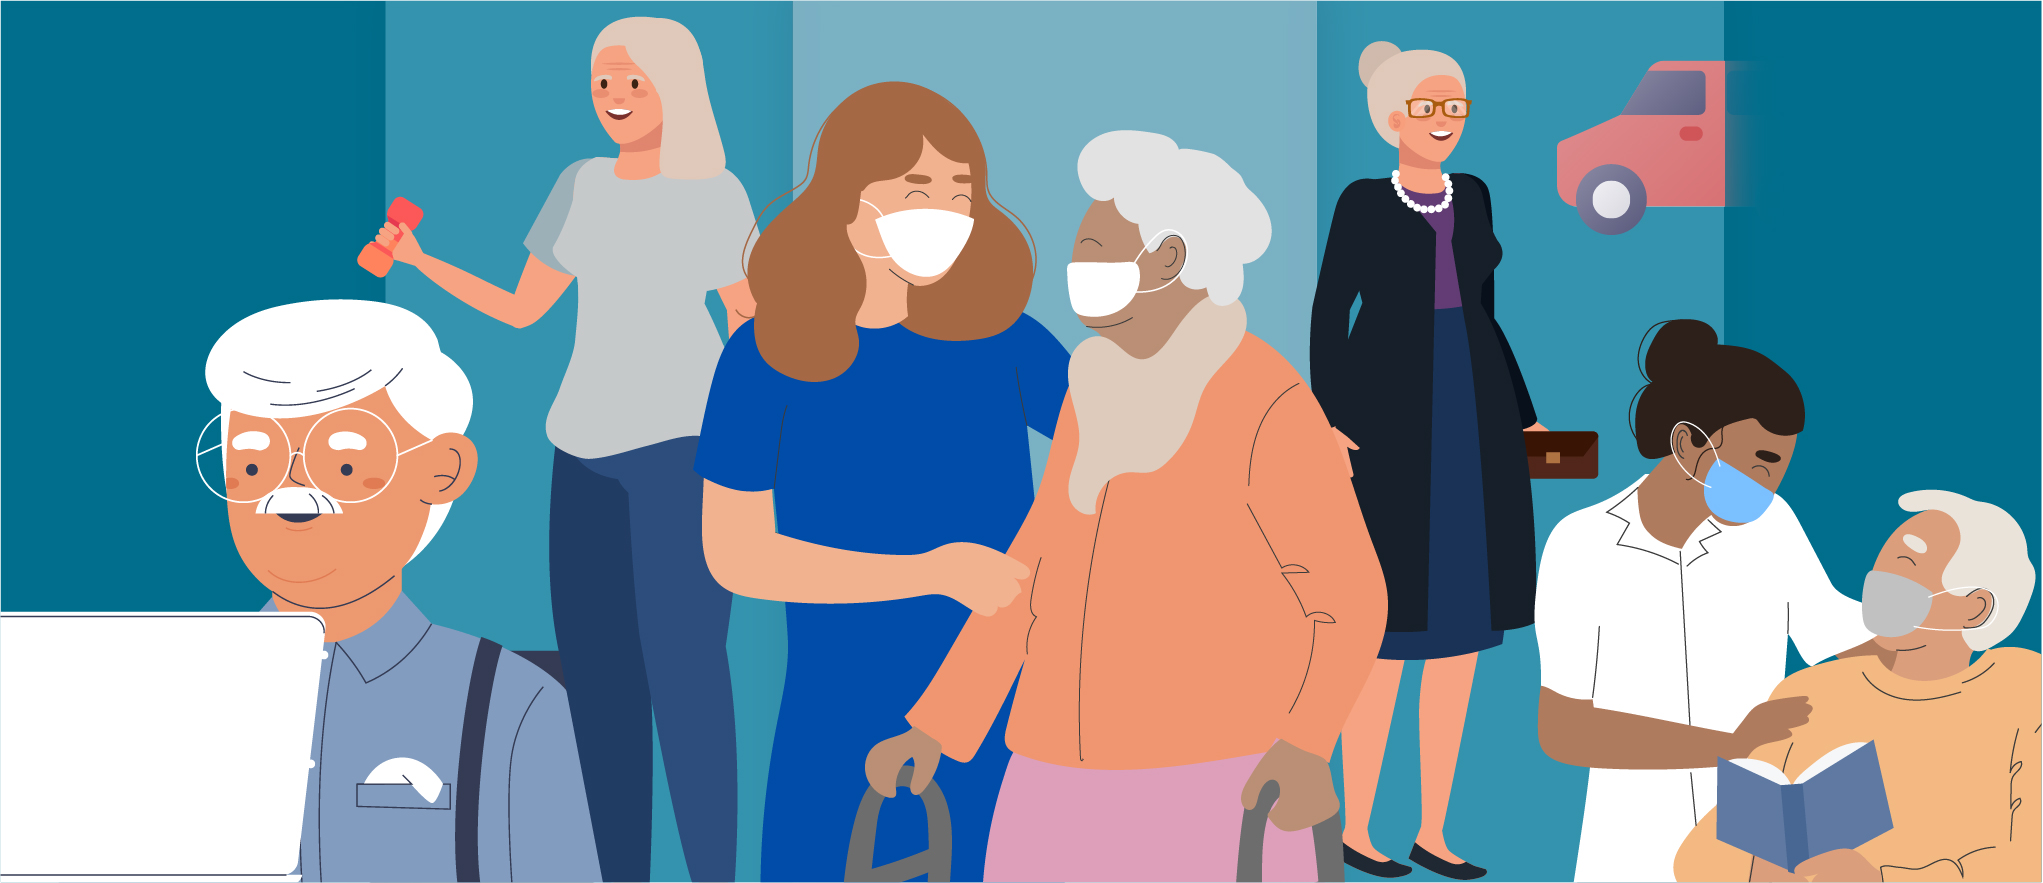 A Quick Look at 7 Innovators that are Disrupting Primary Care for Seniors